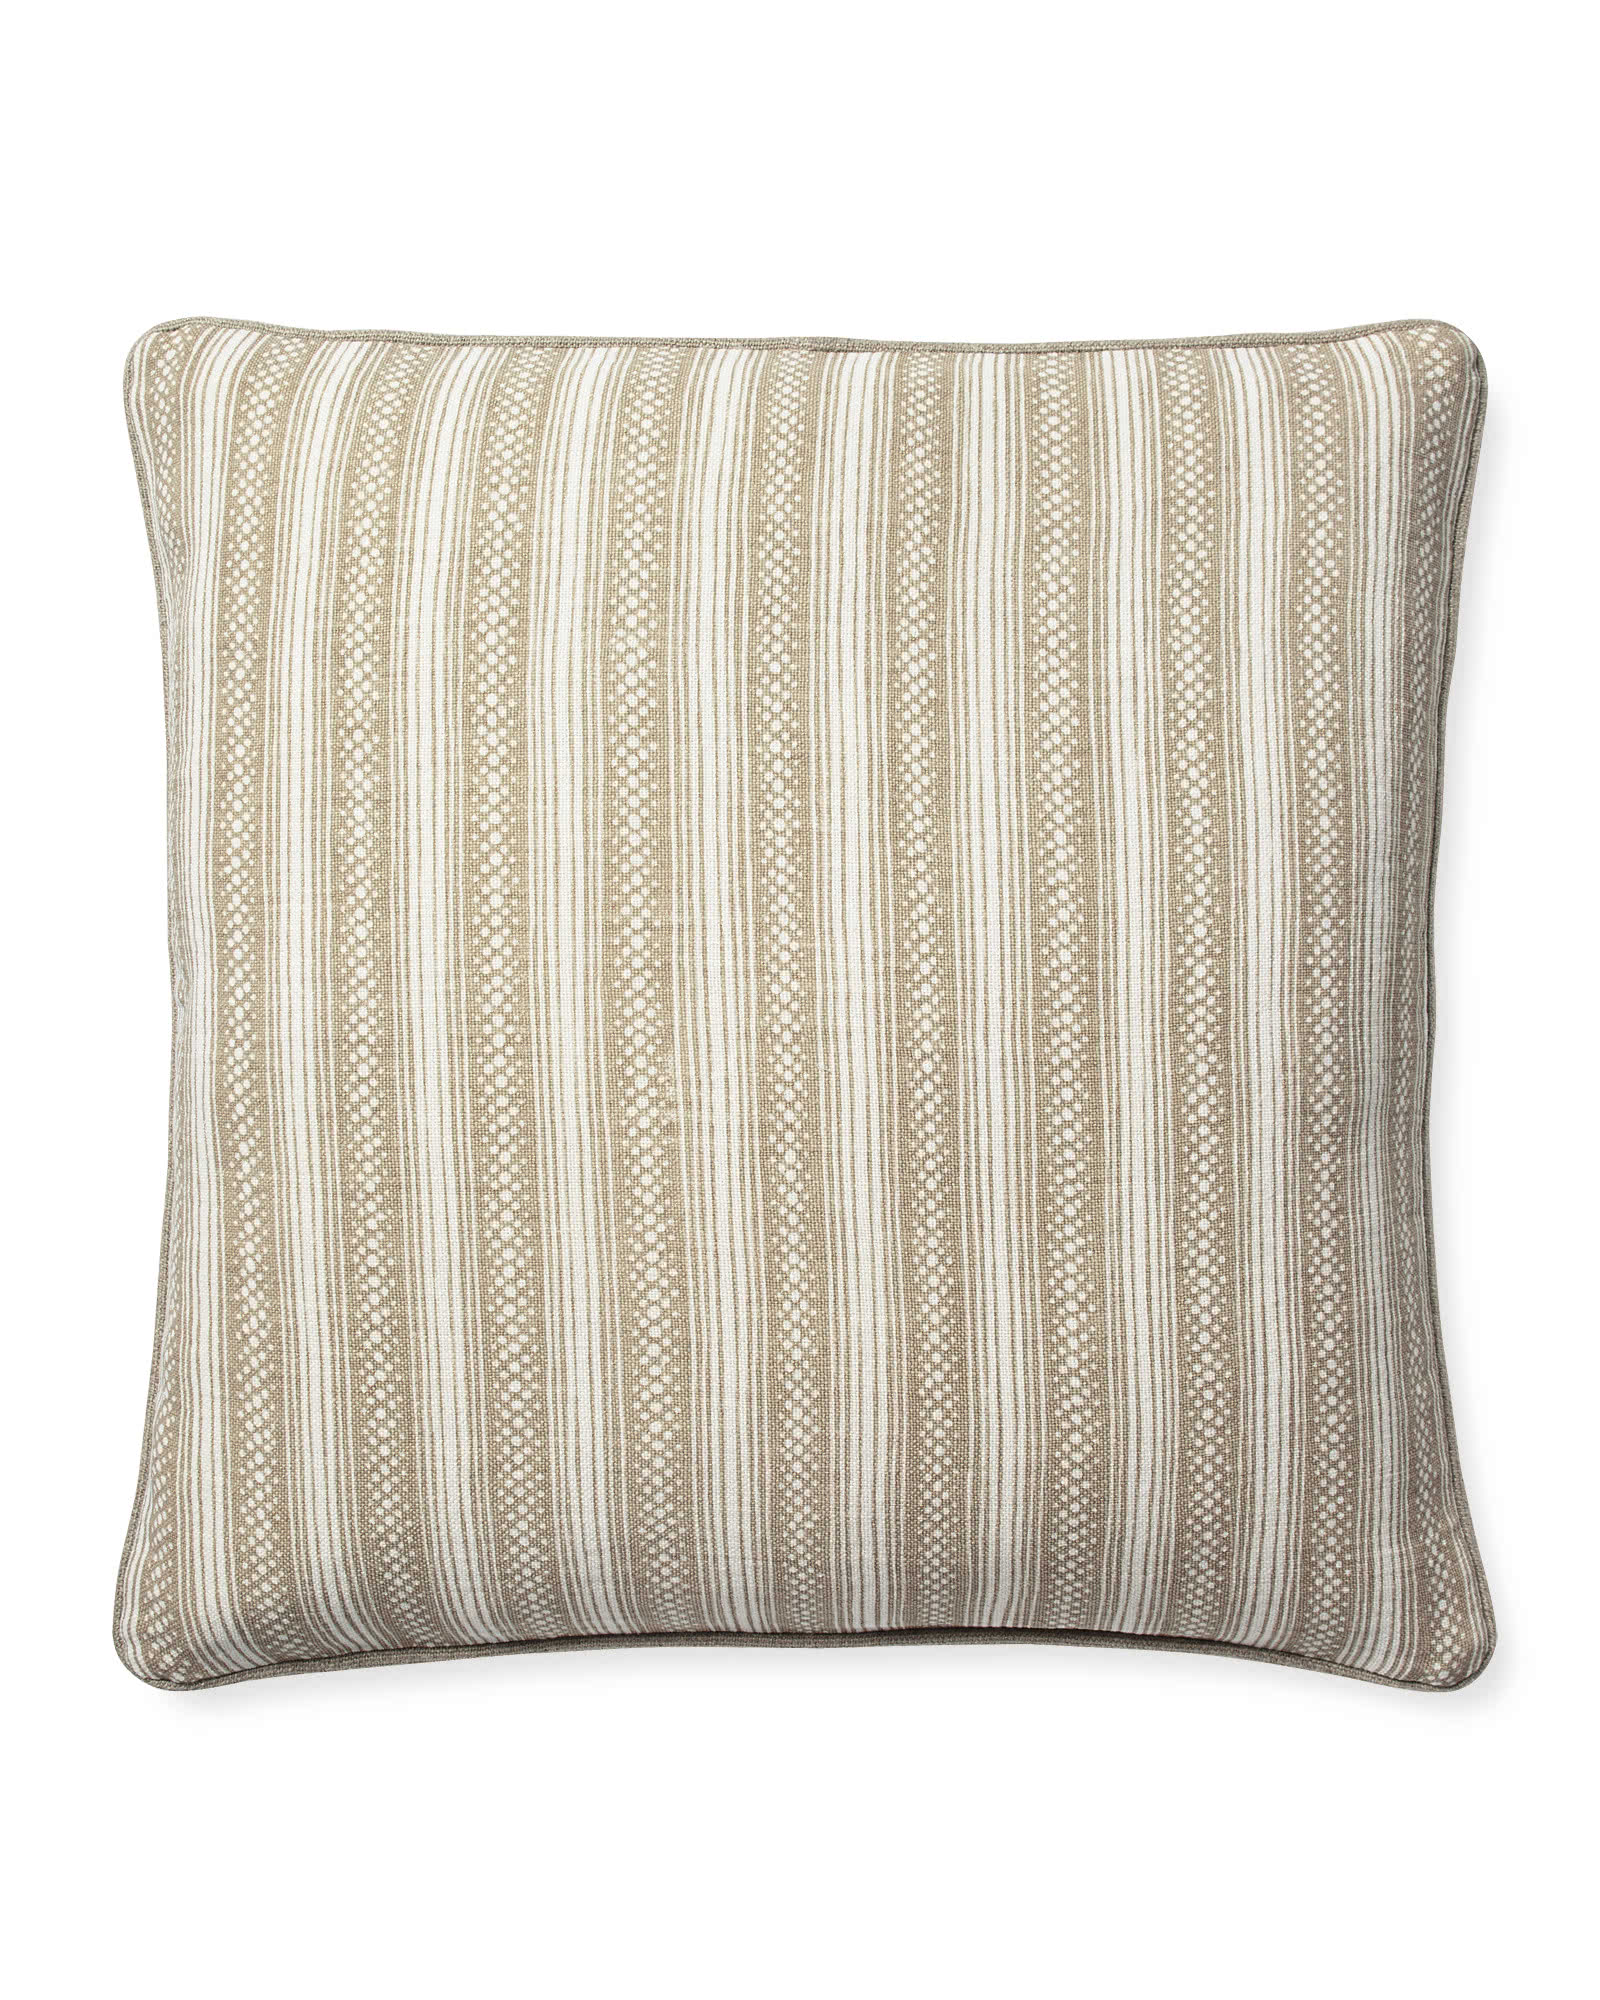 Stowe Pillow Cover, Flax/White